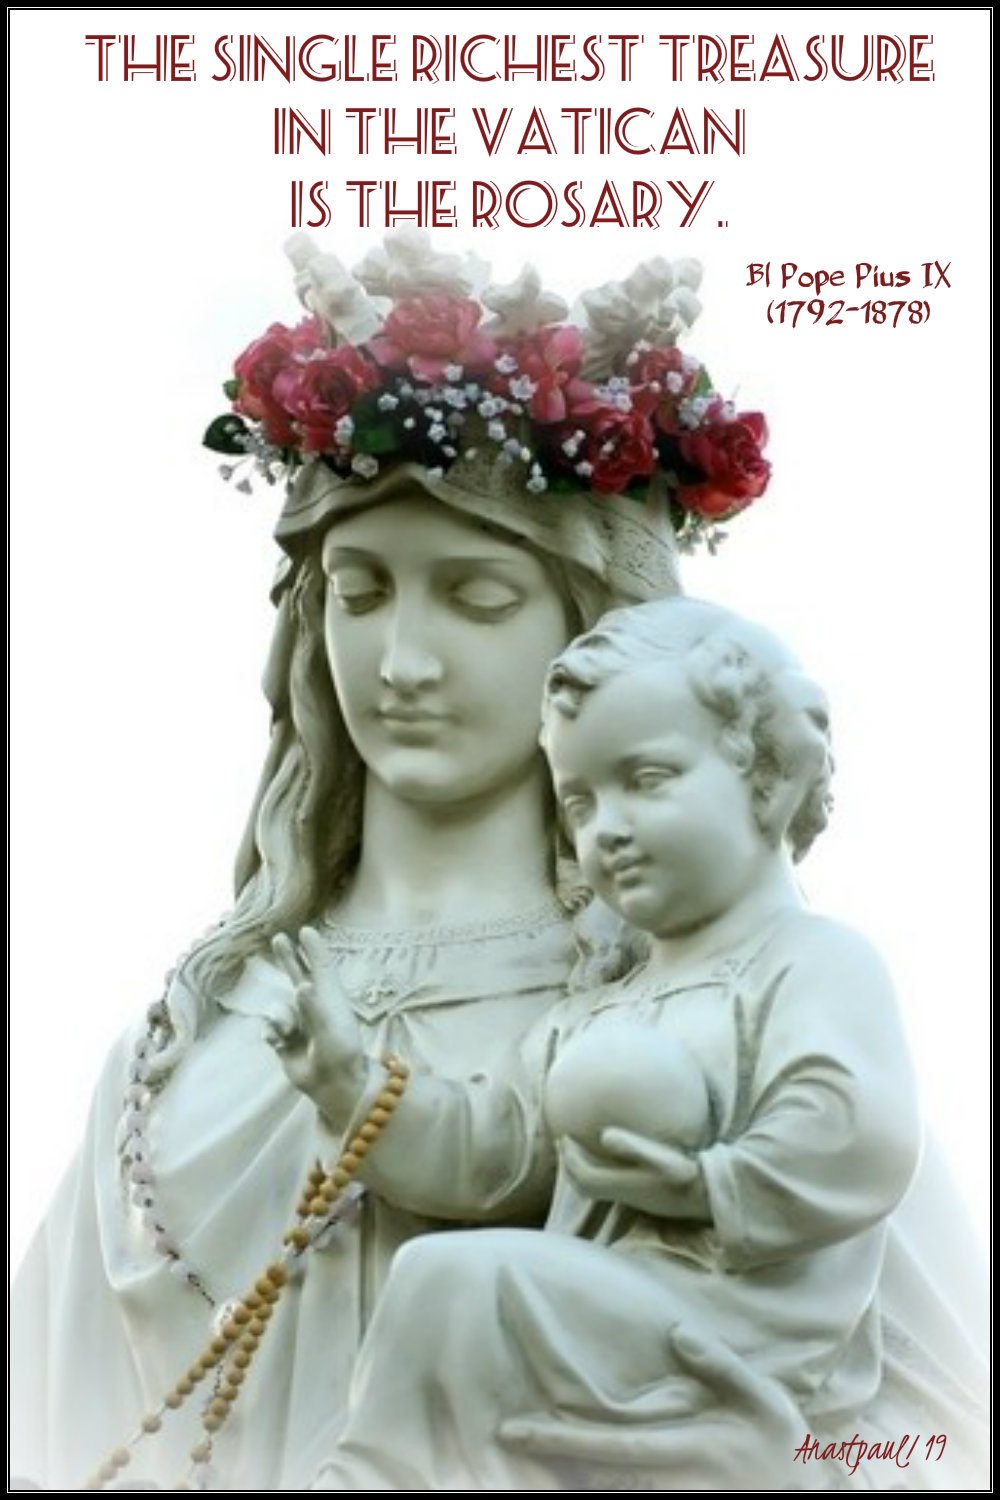 the single richest treasure in the vatican is the rosary bl pope pius ix 3 aug 2019